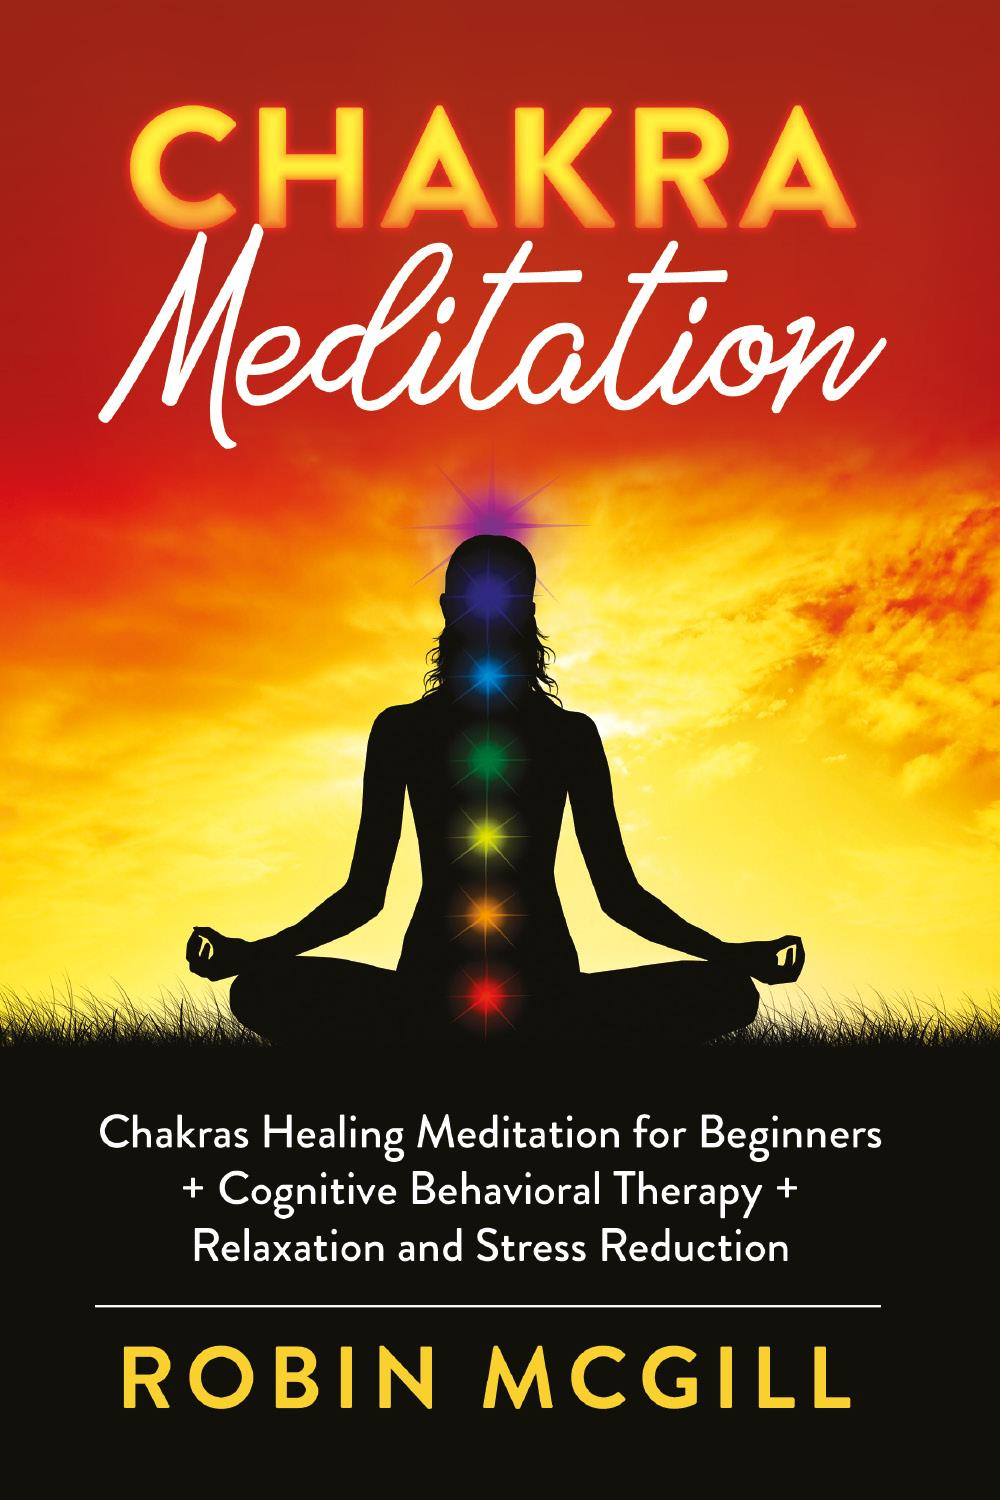 Chakra Meditation. Chakras Healing Meditation for Beginners + Cognitive Behavioral Therapy + Relaxation and Stress Reduction